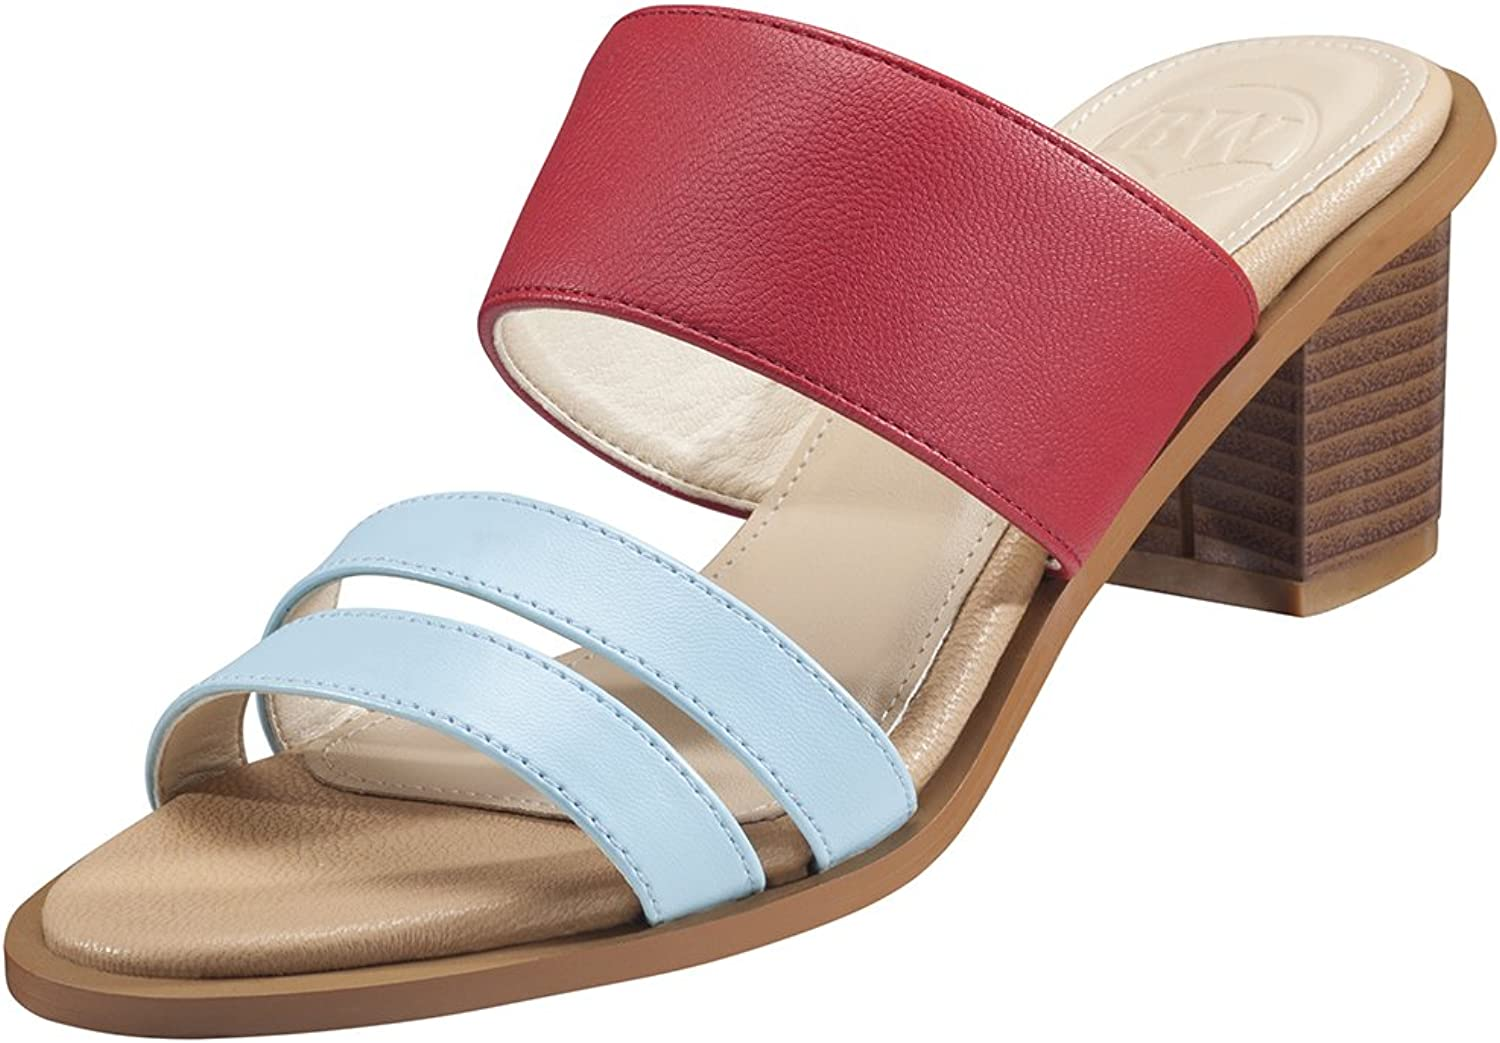 BW Sandals Women's goldenbush Sandals